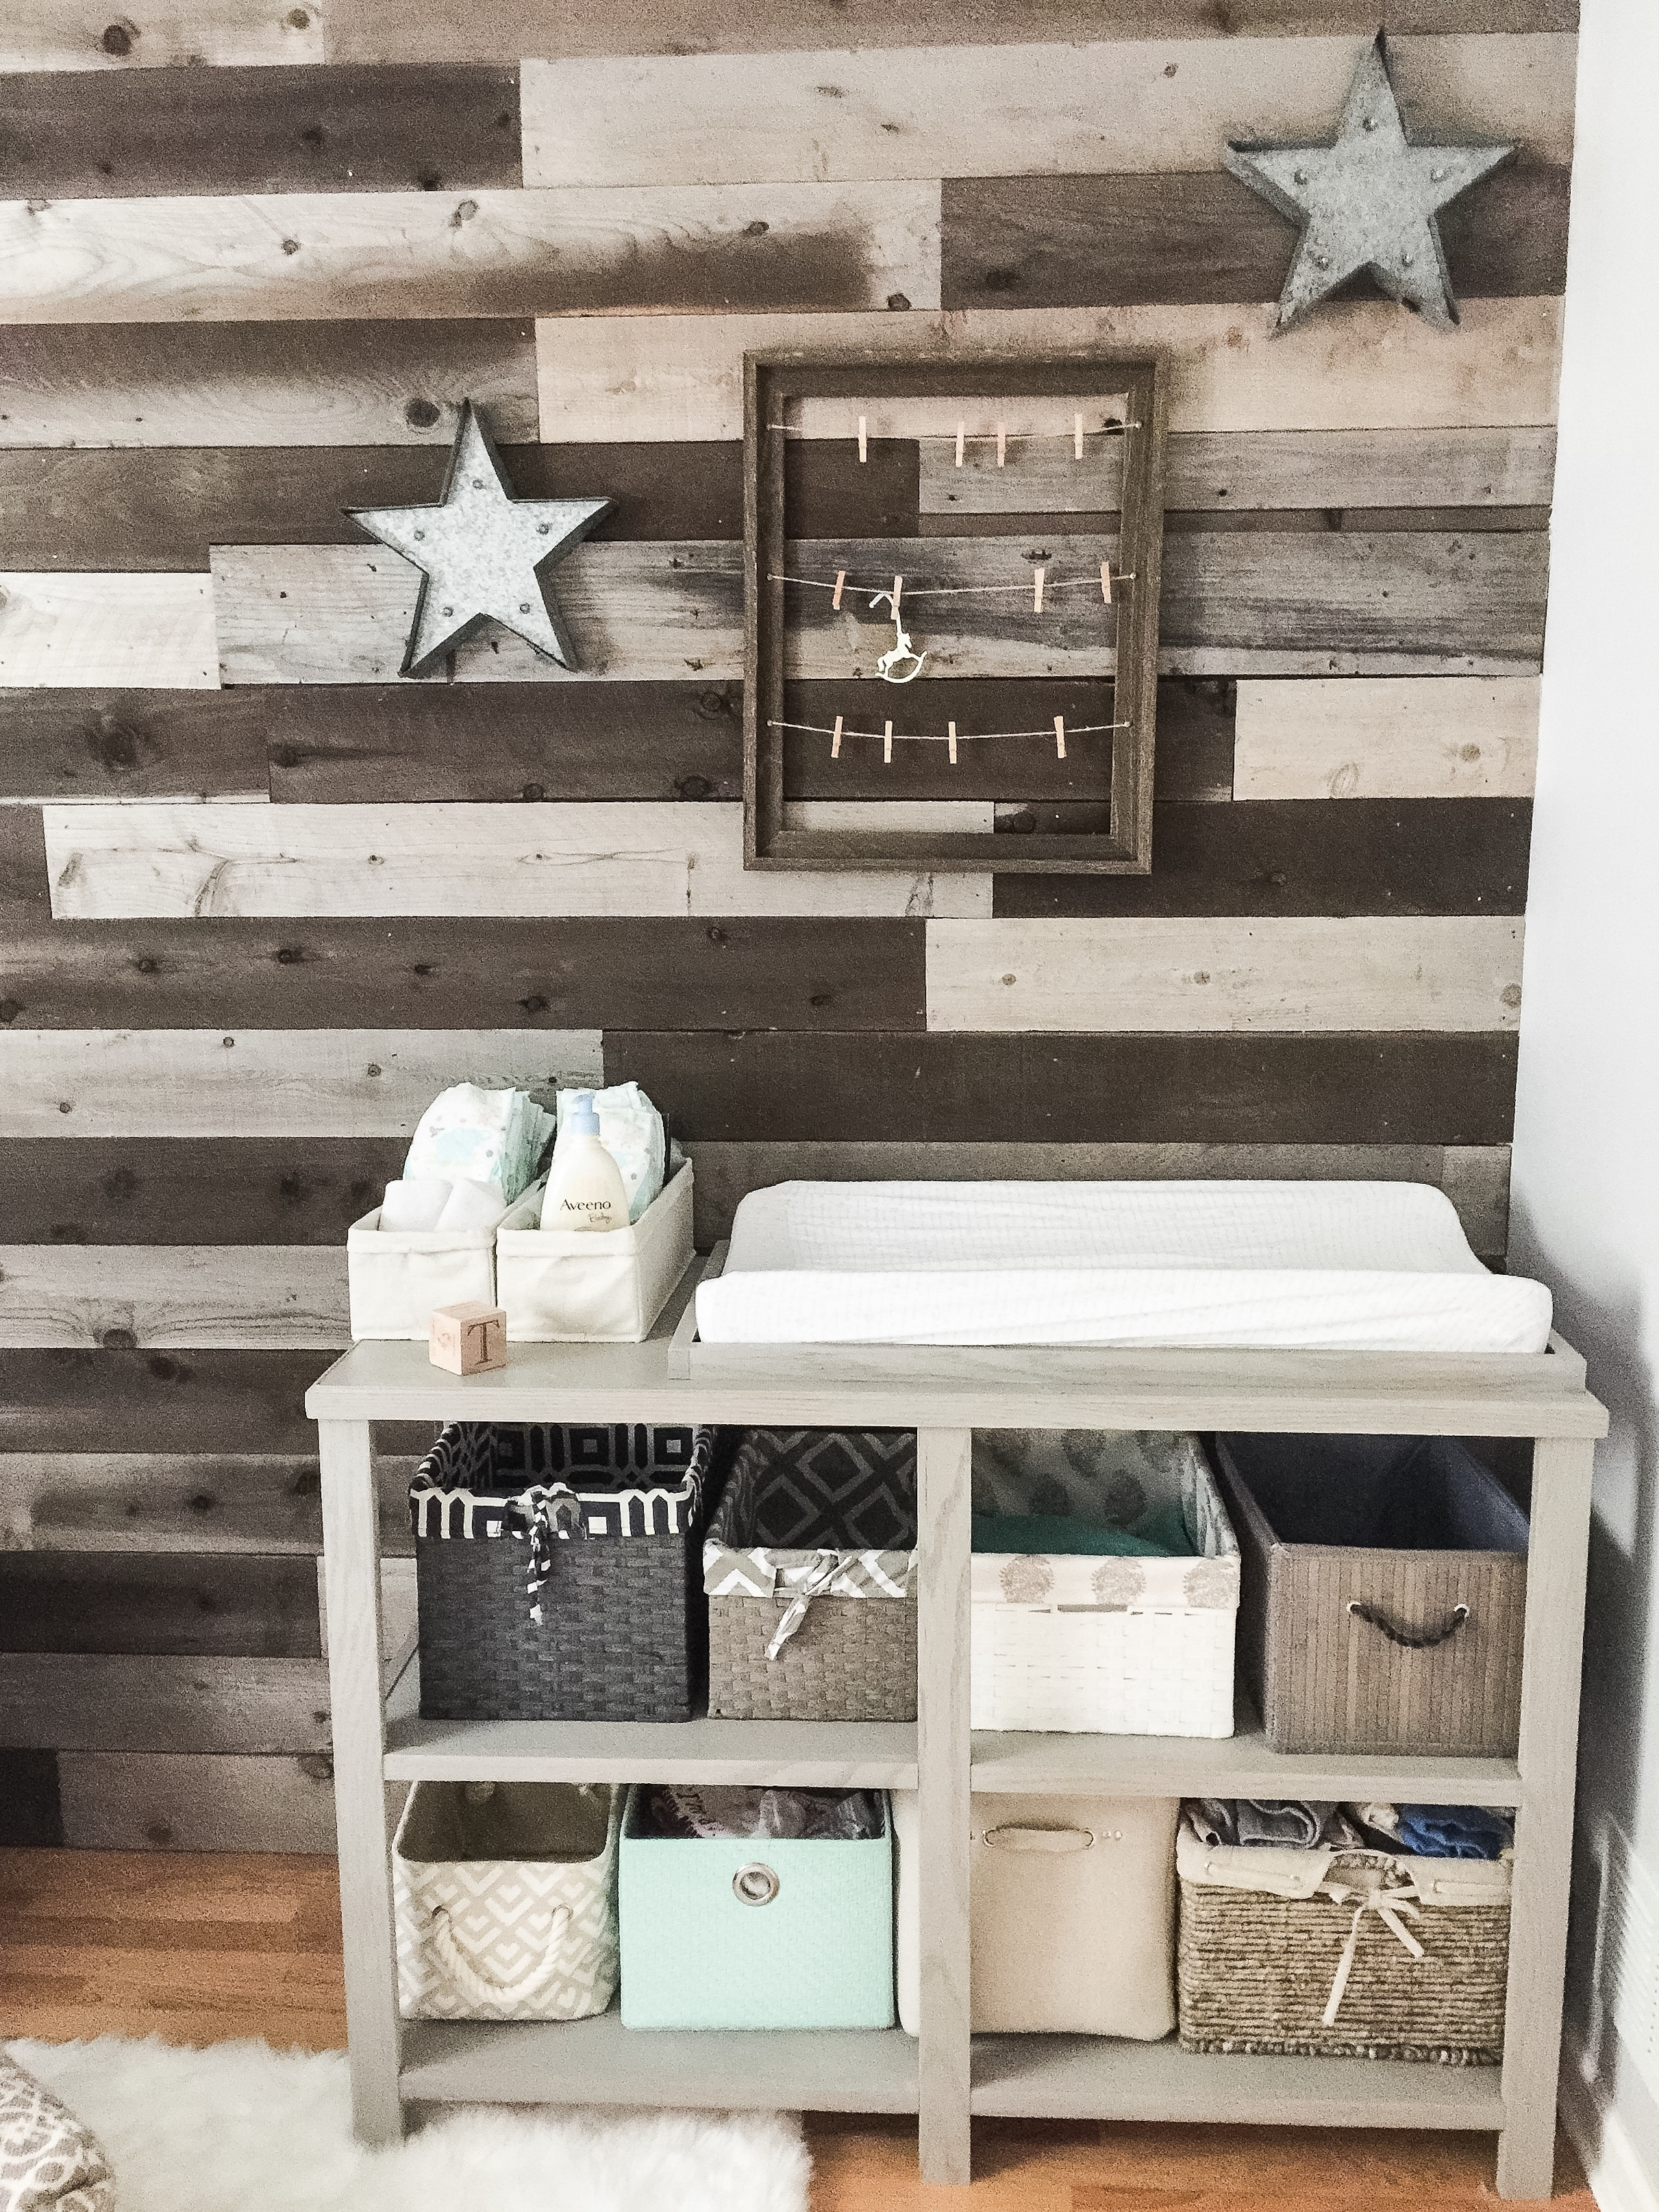 DIY Wooden Changing Table with Basket Storage. How to design a gender neutral nursery. Nursery decor for a boy or girl. #nurserydecor #nurserydesign #genderneutral